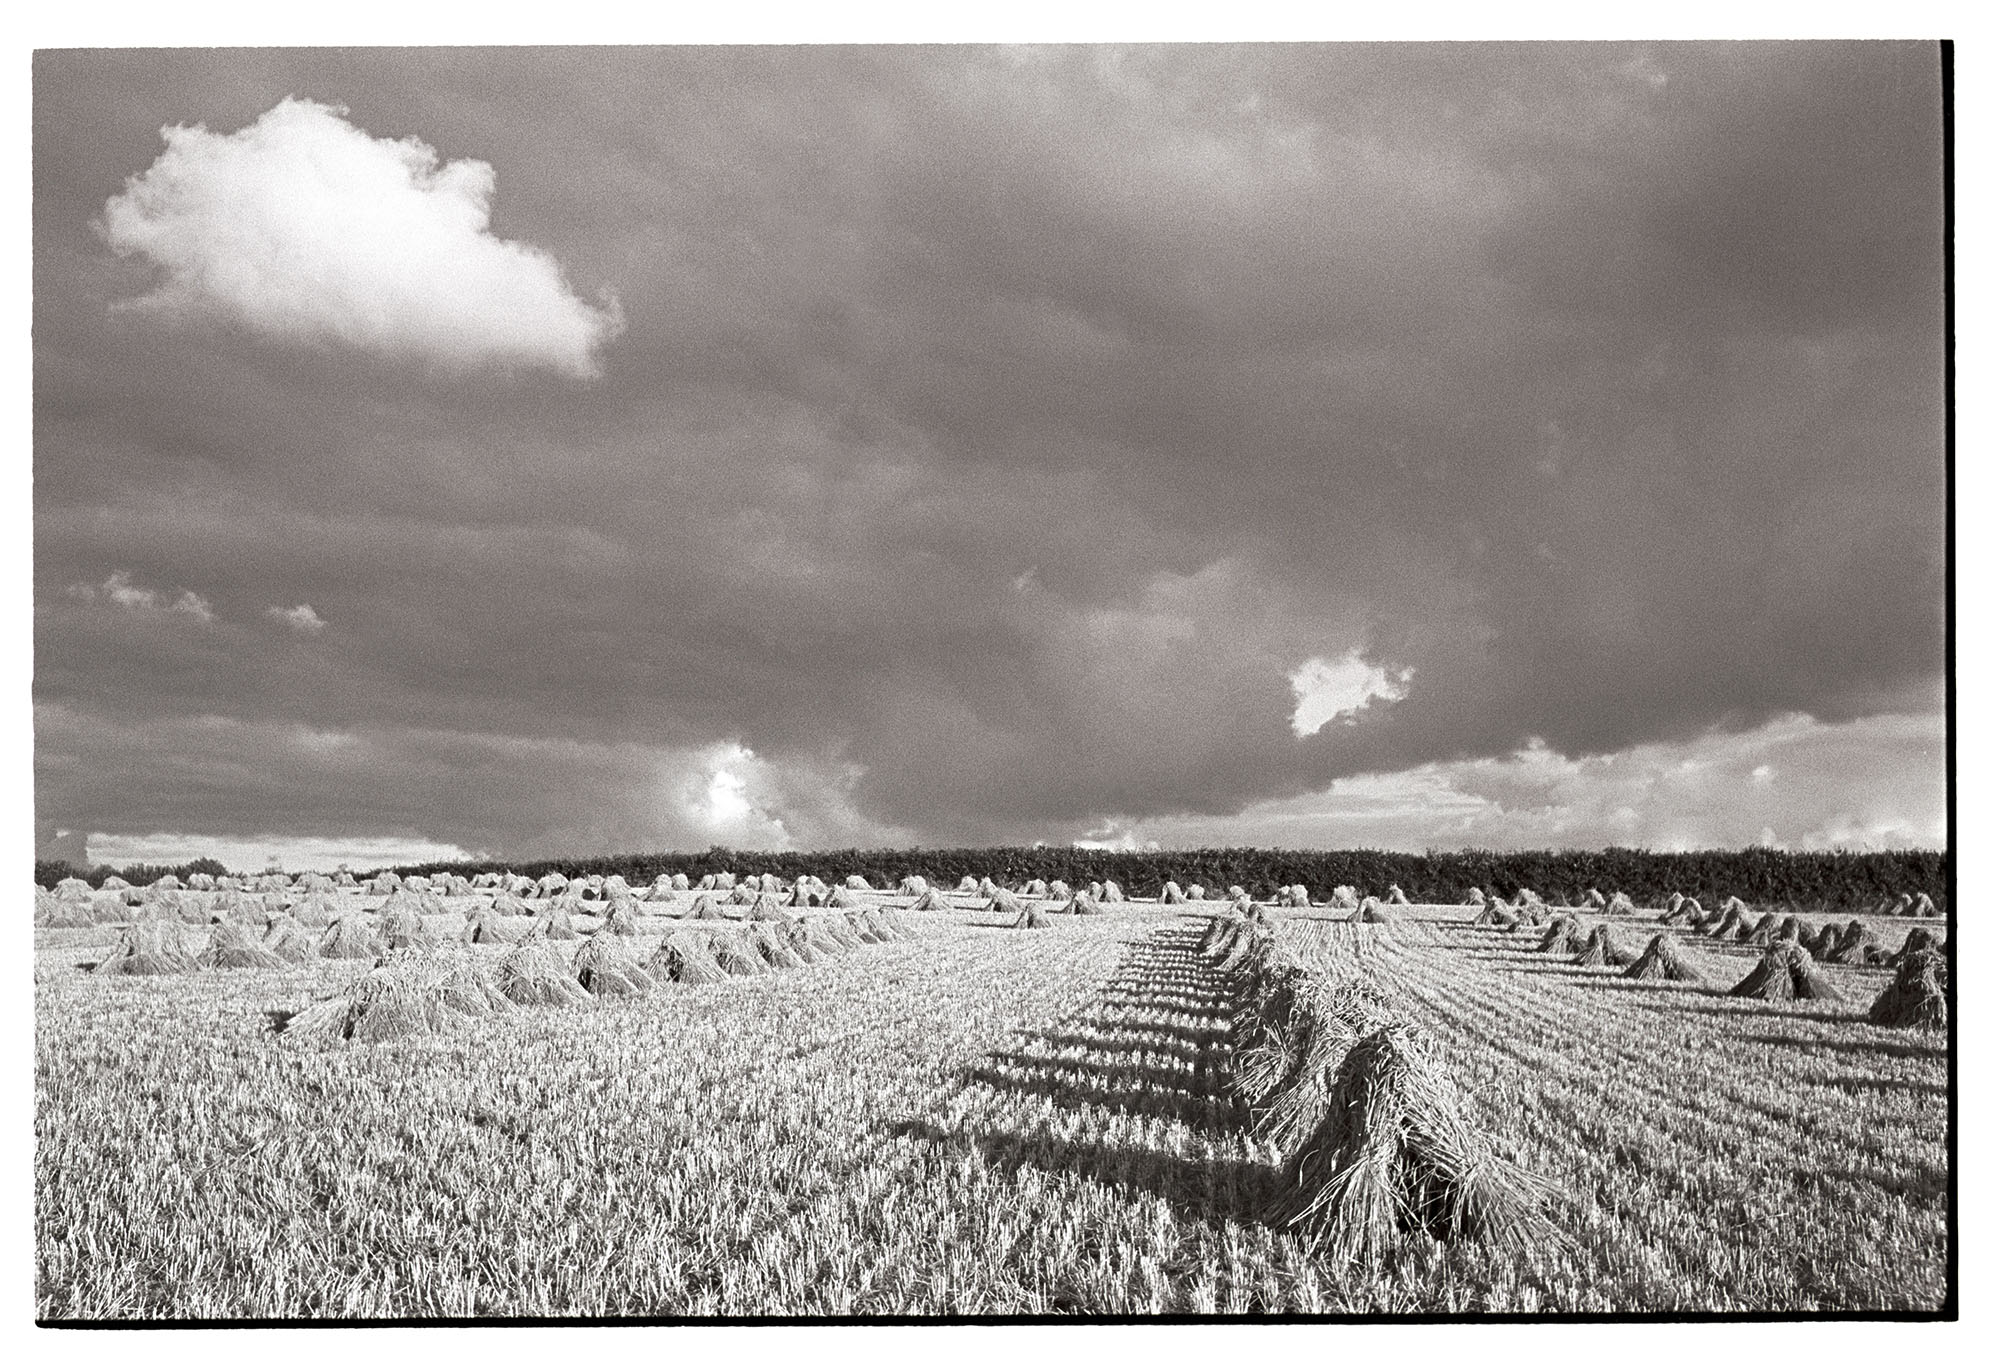 Corn stooks in evening sun with stormy cloudy sky. <br /> [Corn stooks in a field at Windwhistle, near Upcott, Dolton, in the evening. The sun is shining through a cloudy sky.]